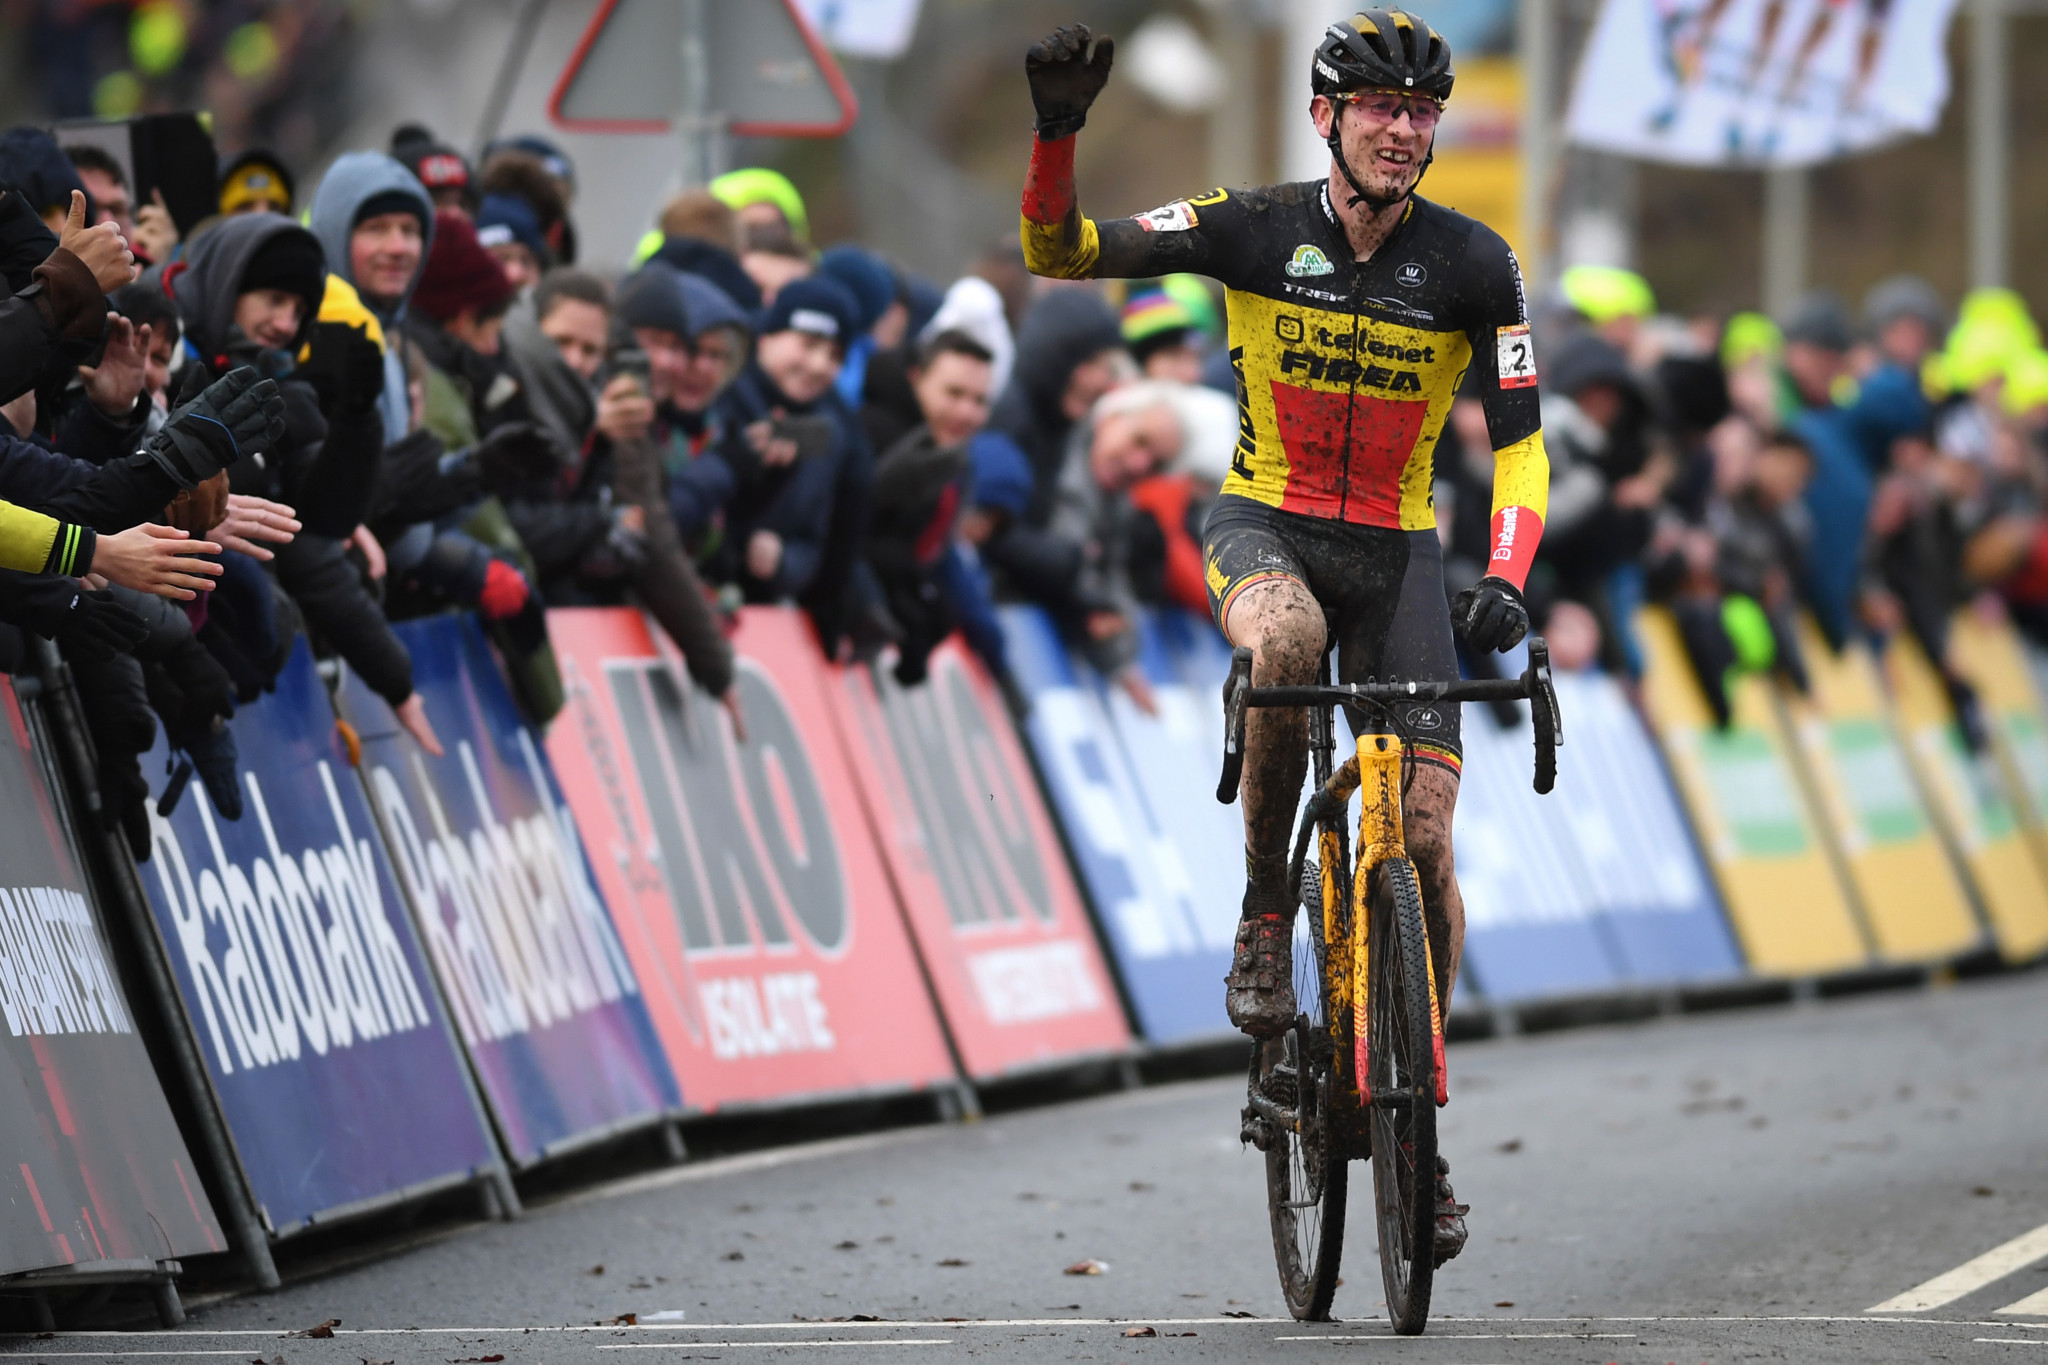 Toon Aerts' second place finish was enough to seal the overall World Cup title ©Getty Images